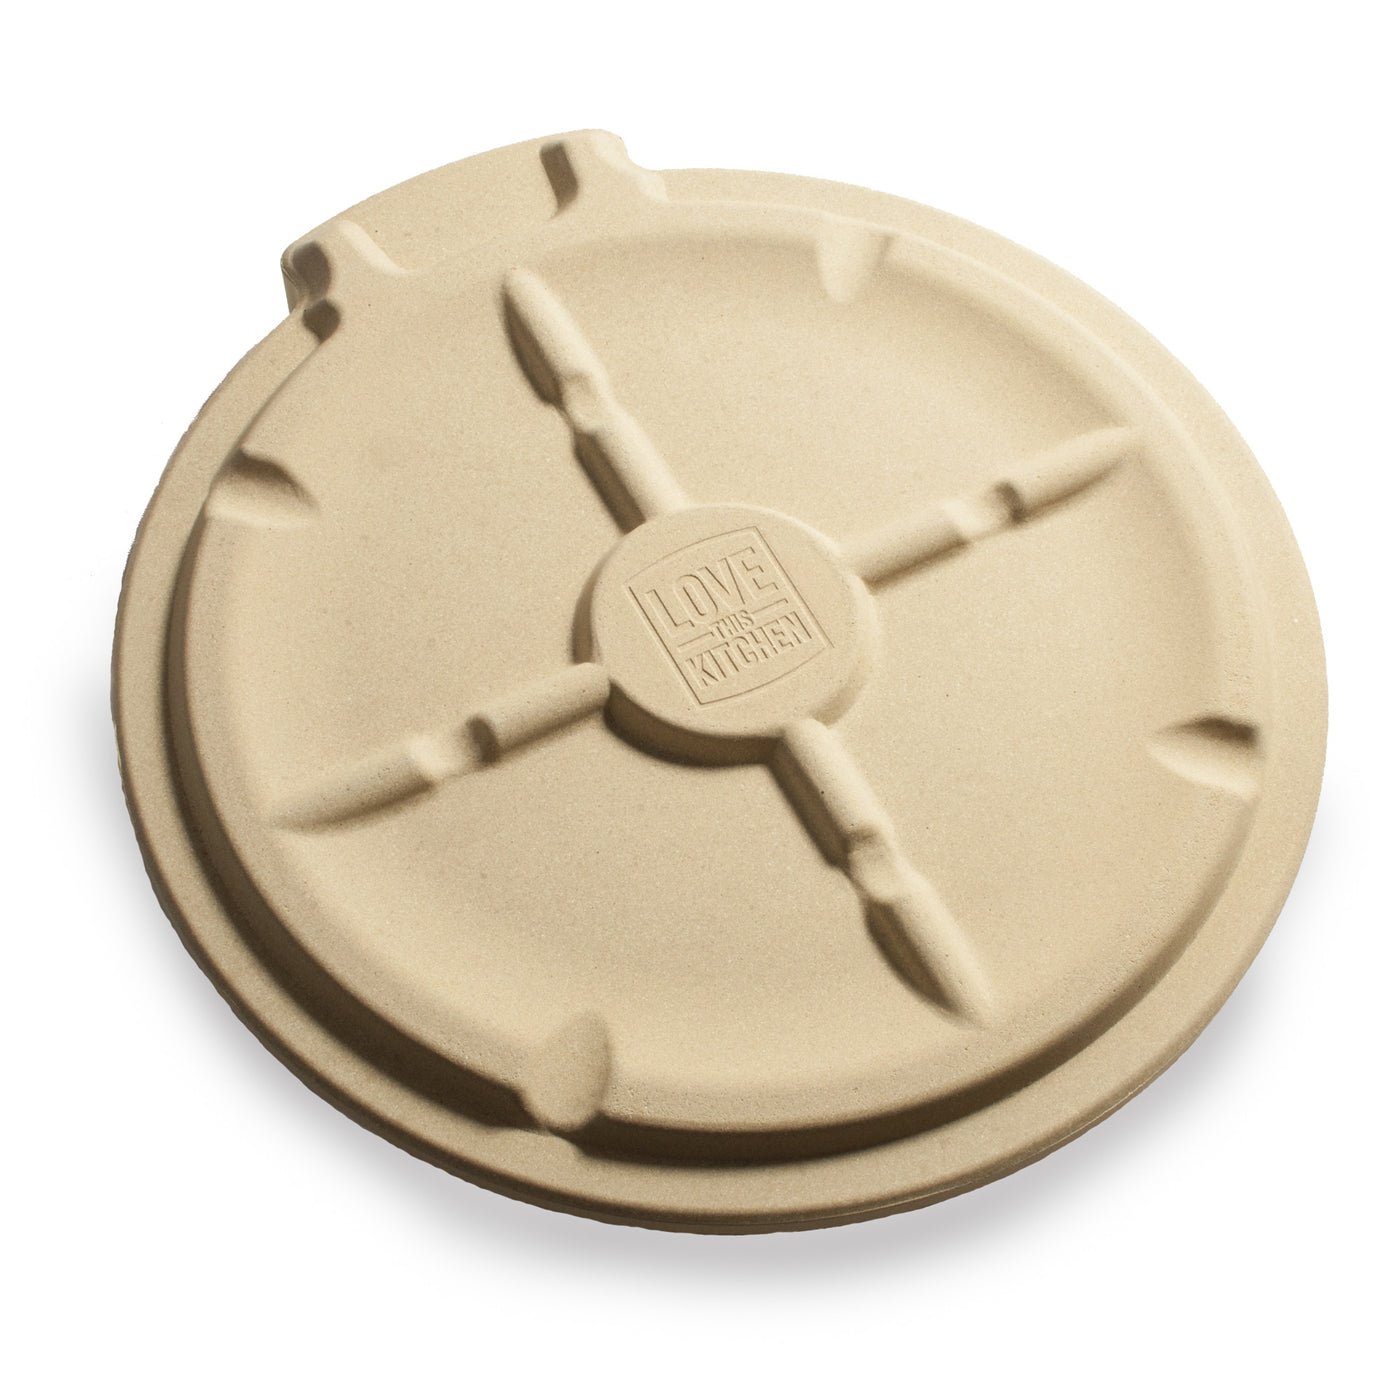 The Ultimate Pizza Stone 16 Round Great For Baking Pizza Cookies Lovethiskitchen